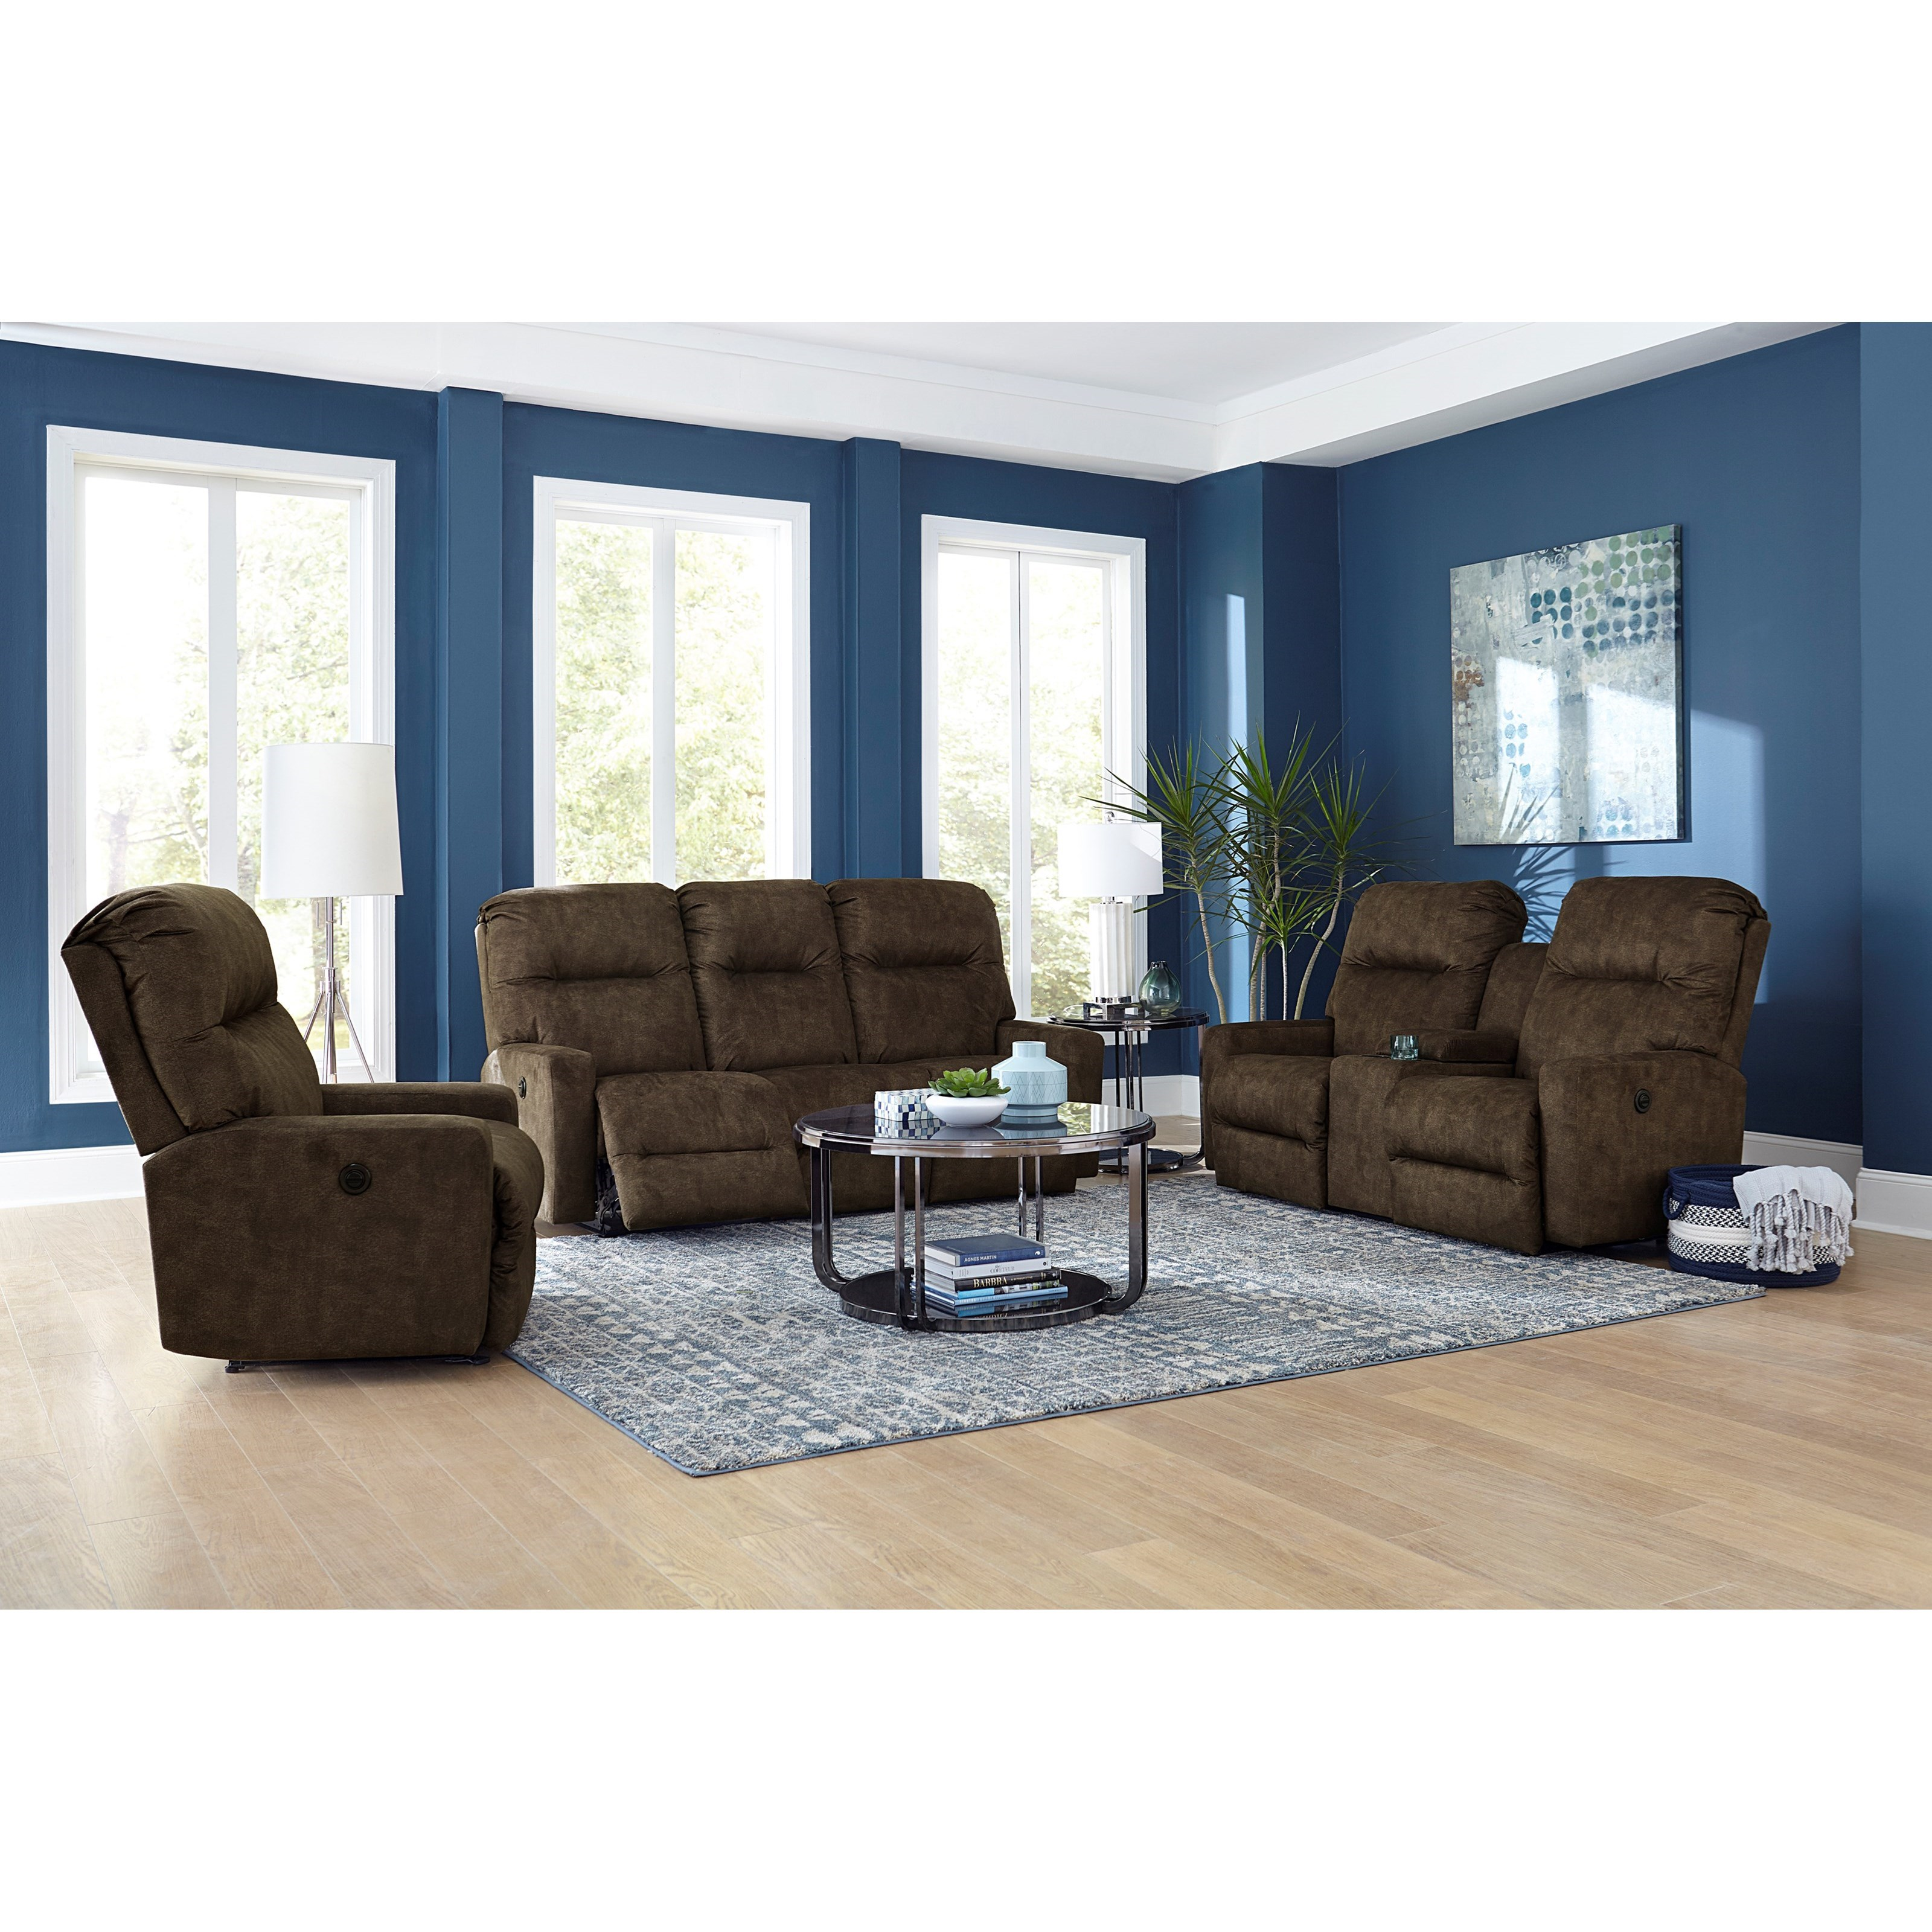 Kenley Reclining Living Room Group by Best Home Furnishings at Baer's Furniture